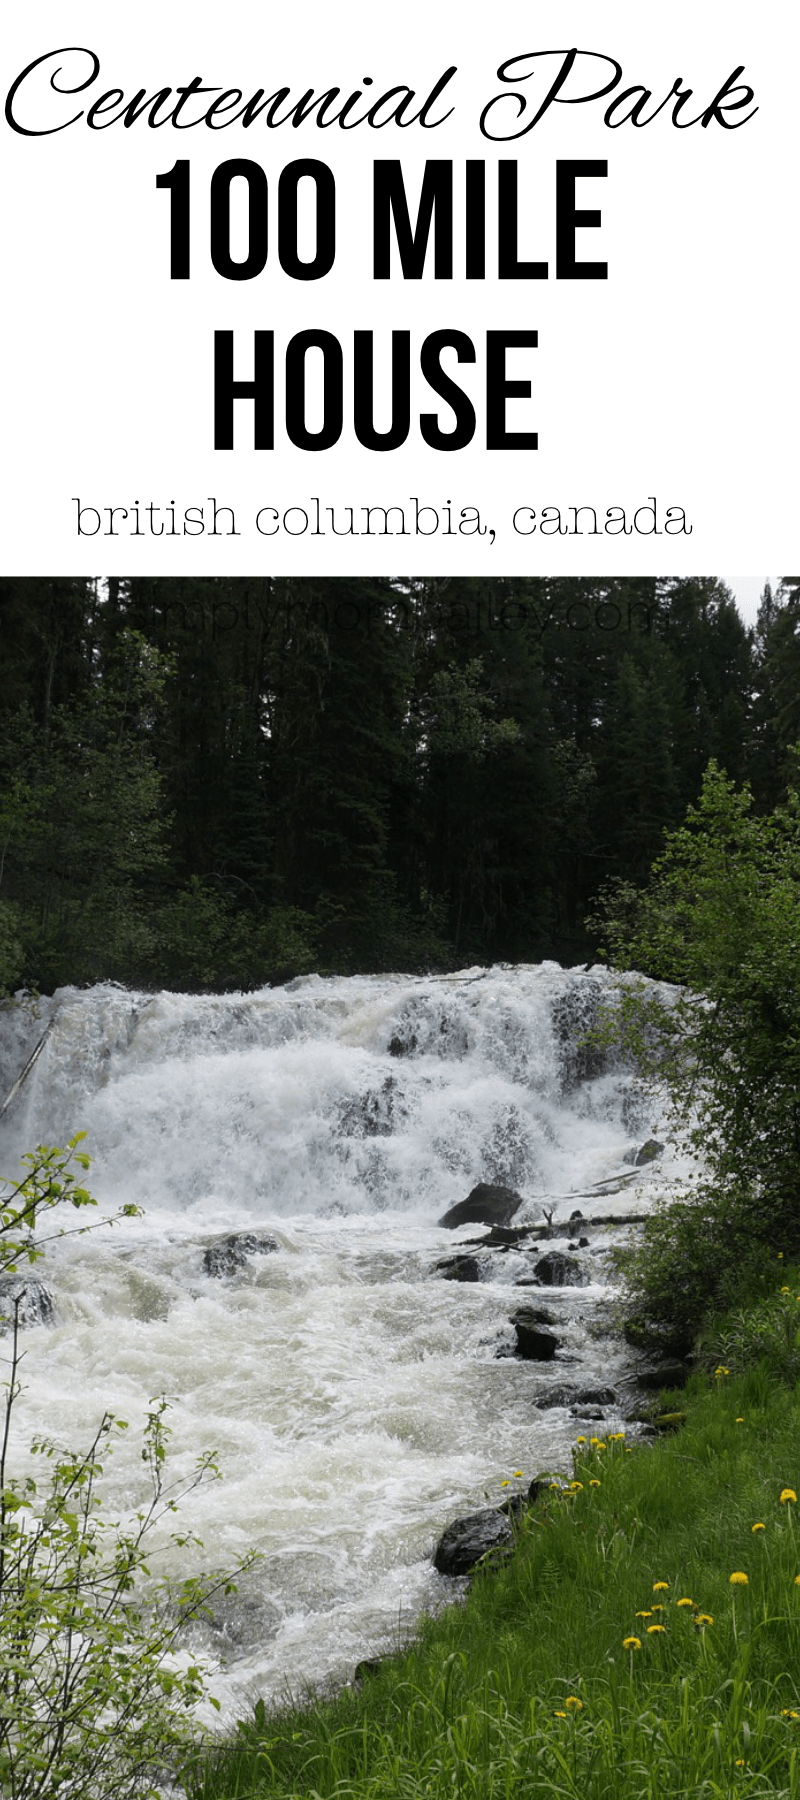 Check out Bridge Creek Falls in Centennial Park, 100 Mile House. This simple park offers stunning waterfalls and playgrounds for families traveling in and around british columbia #roadtriptoAlaska #exploreBC #travelCanada #canadianroadtrip #cariboo #britishcolumbia #traveltrips #travelwithkids #bcparks #CanadianParks #waterfalls